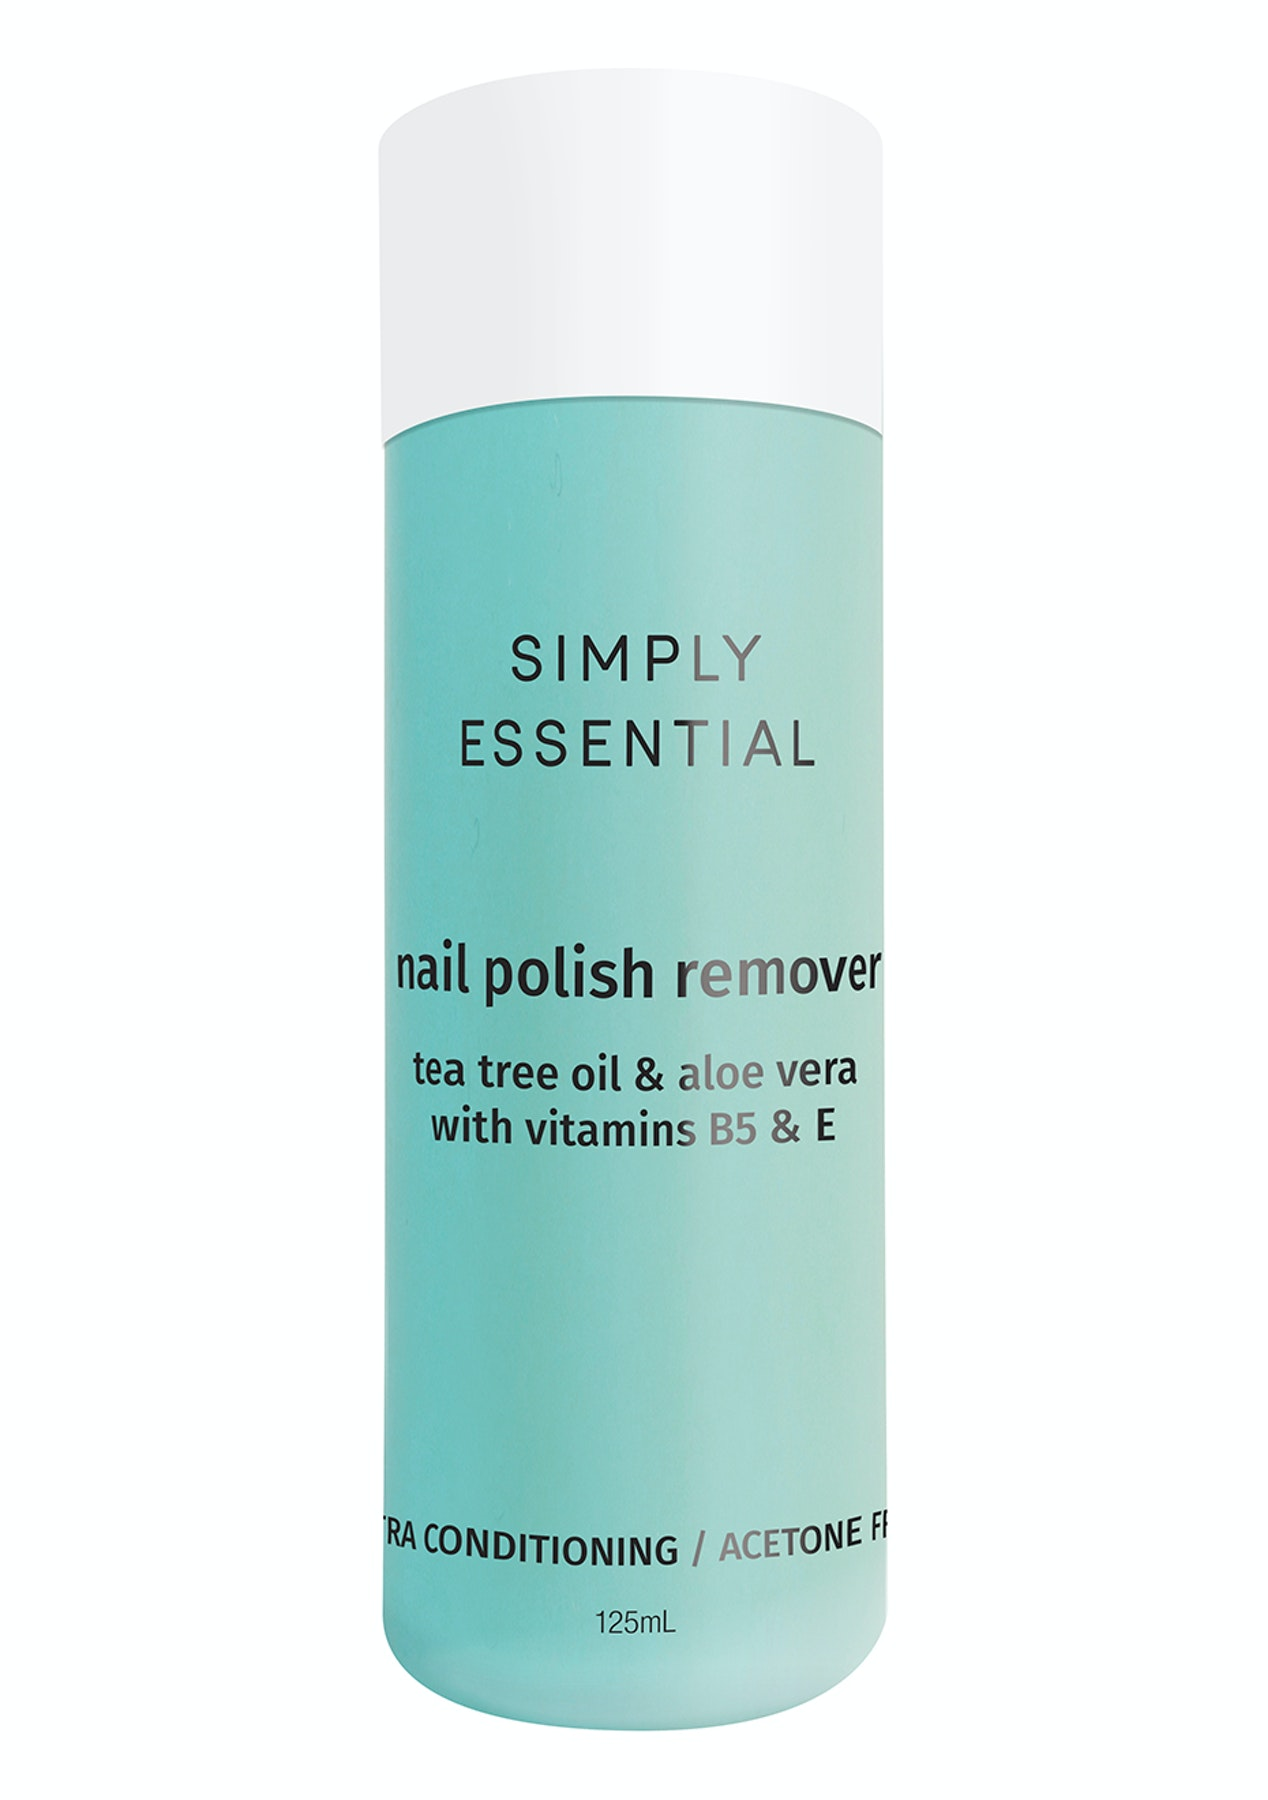 Simply Essentials - Nail Polish Remover- Green Extra Conditioning (acetone  free) 125ml